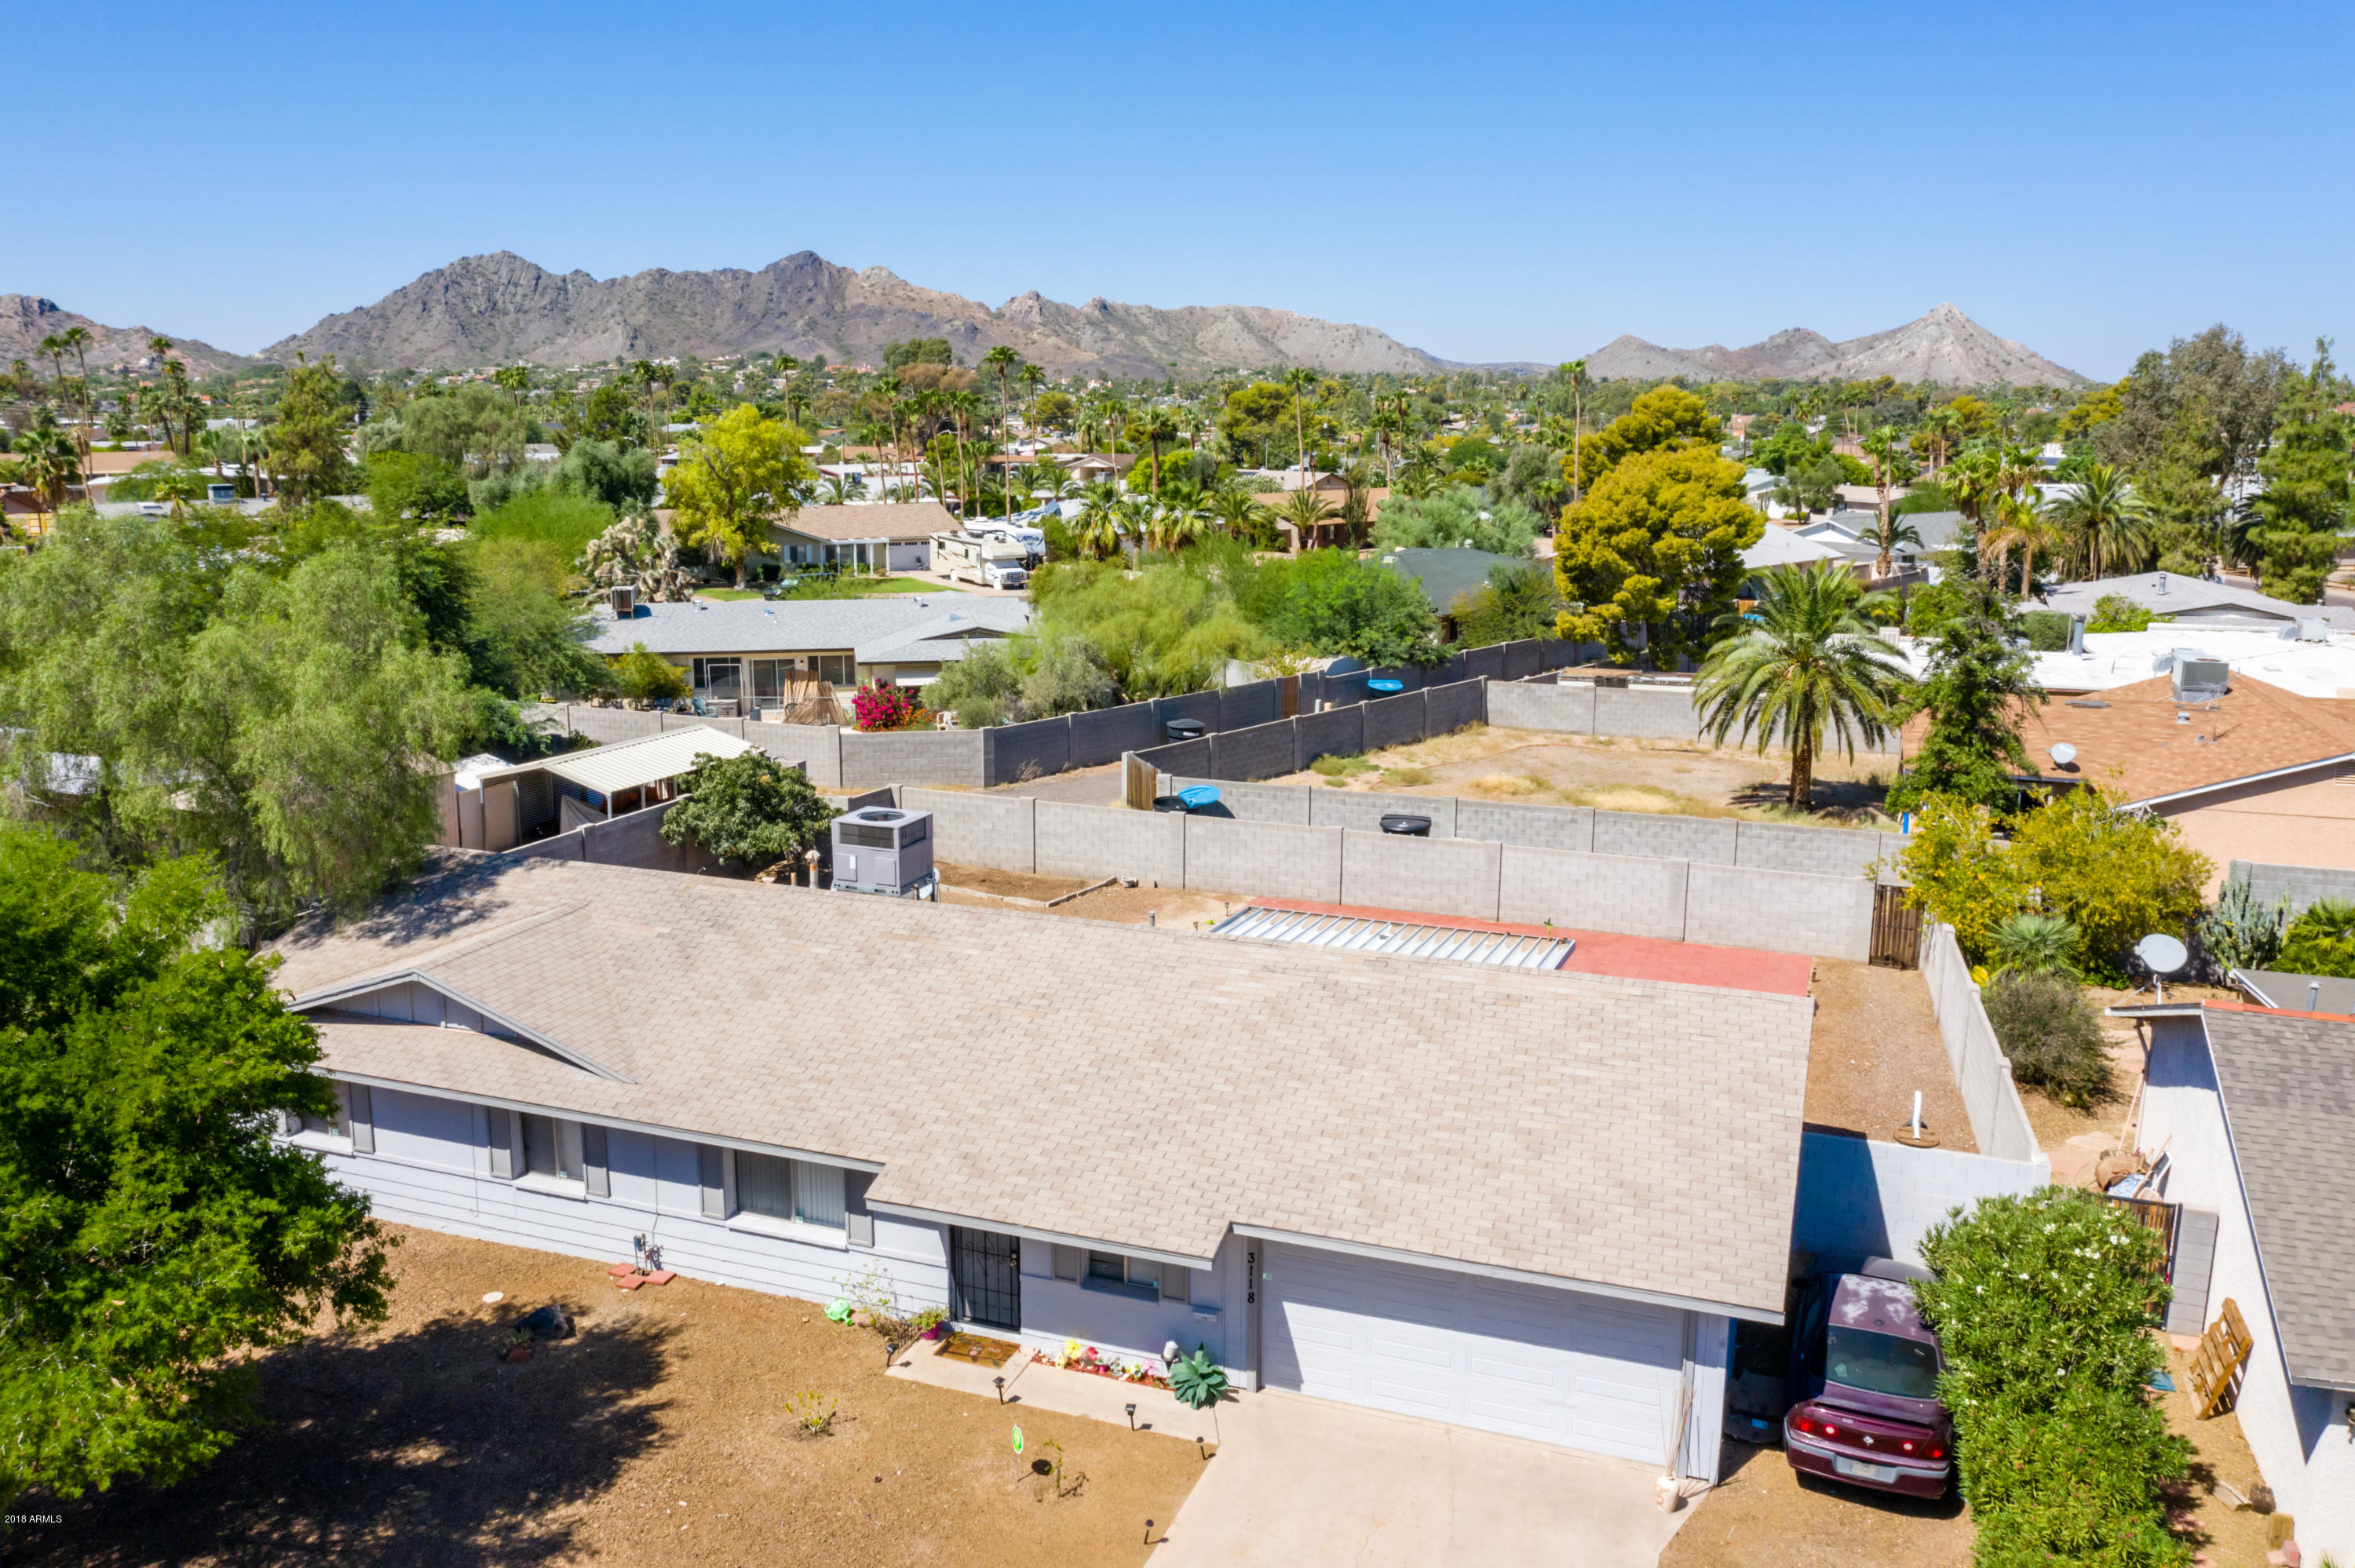 MLS 5819787 3118 E NORTHERN Avenue, Phoenix, AZ 85028 Phoenix AZ Paradise Valley Oasis